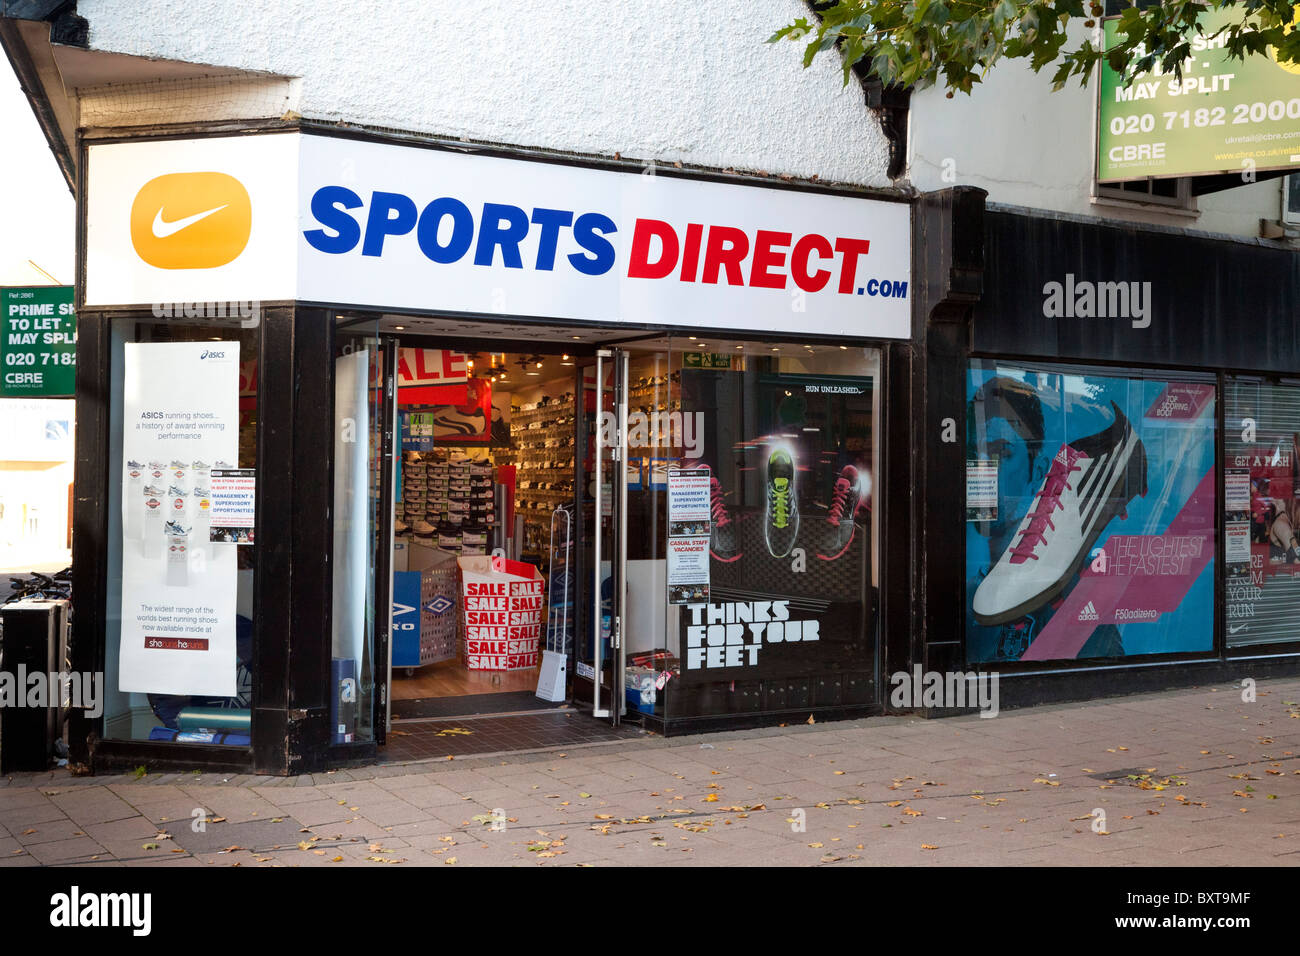 Team Sport Direct. Football Kits / Football Teamwear / Joma Football Kit / Printed Football kits. Welcome to Team Sport Direct where you can find the latest football kits from the top brands such as Adidas, Nike, Joma, Errea, Umbro, Stanno and Uhlsport.